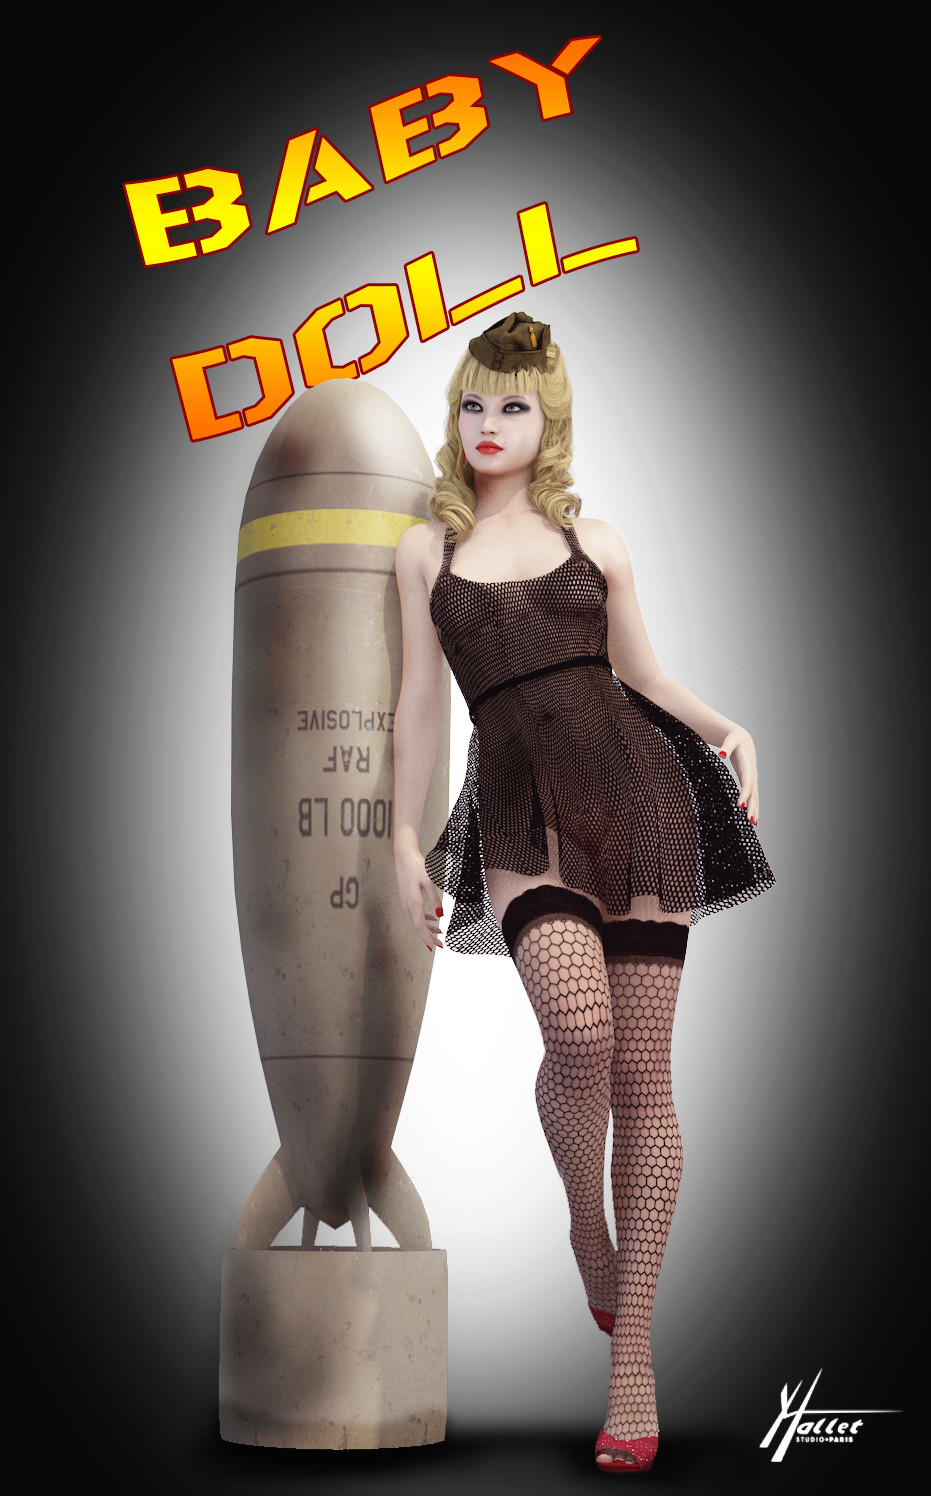 delires pin up et avions - Page 2 Pin_up10